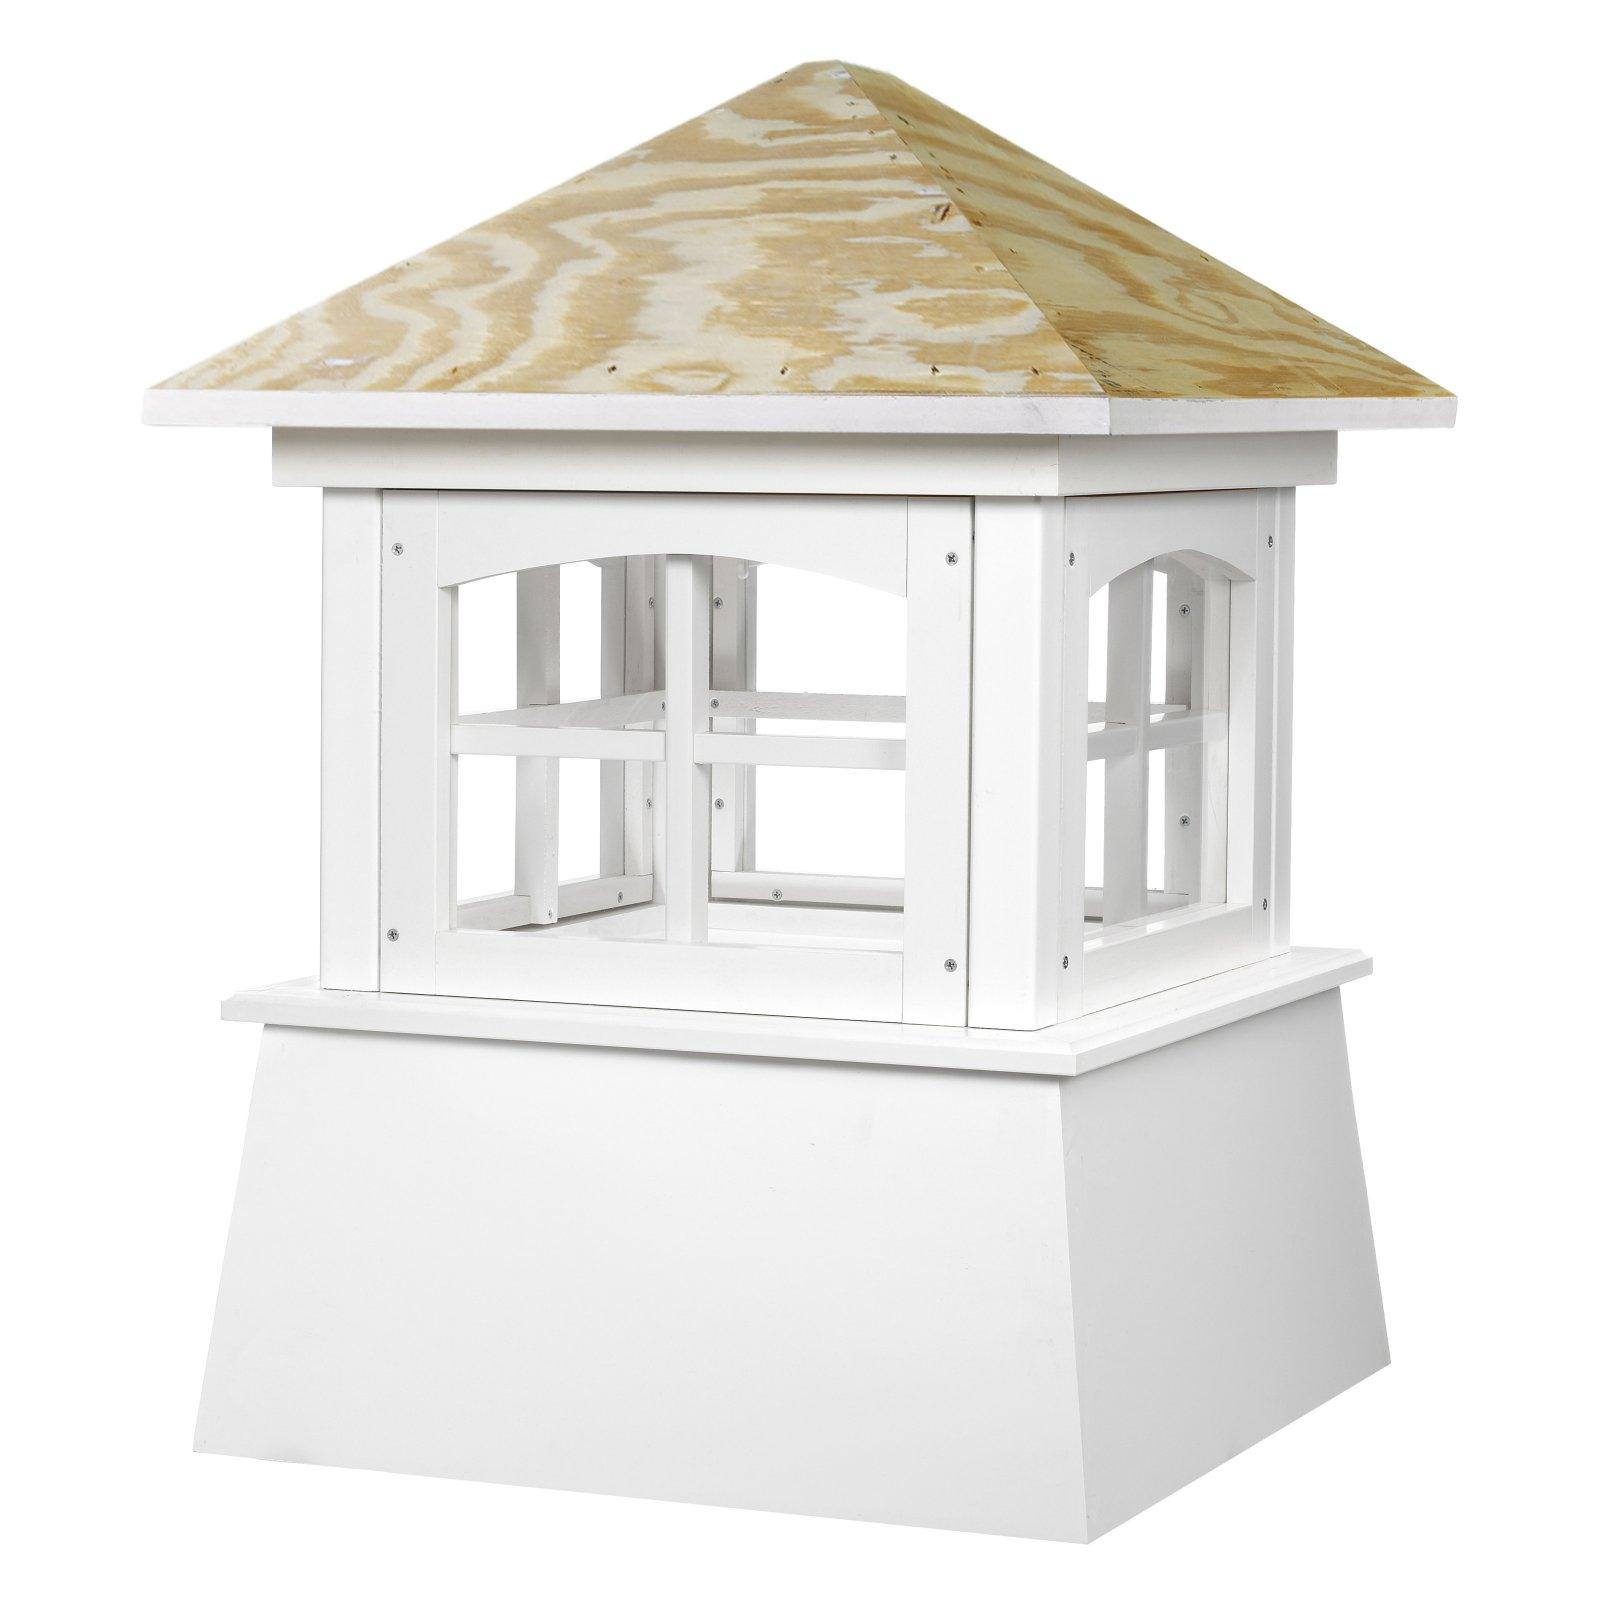 Brookfield Cupola 42 inches x 58 inches by Good Directions